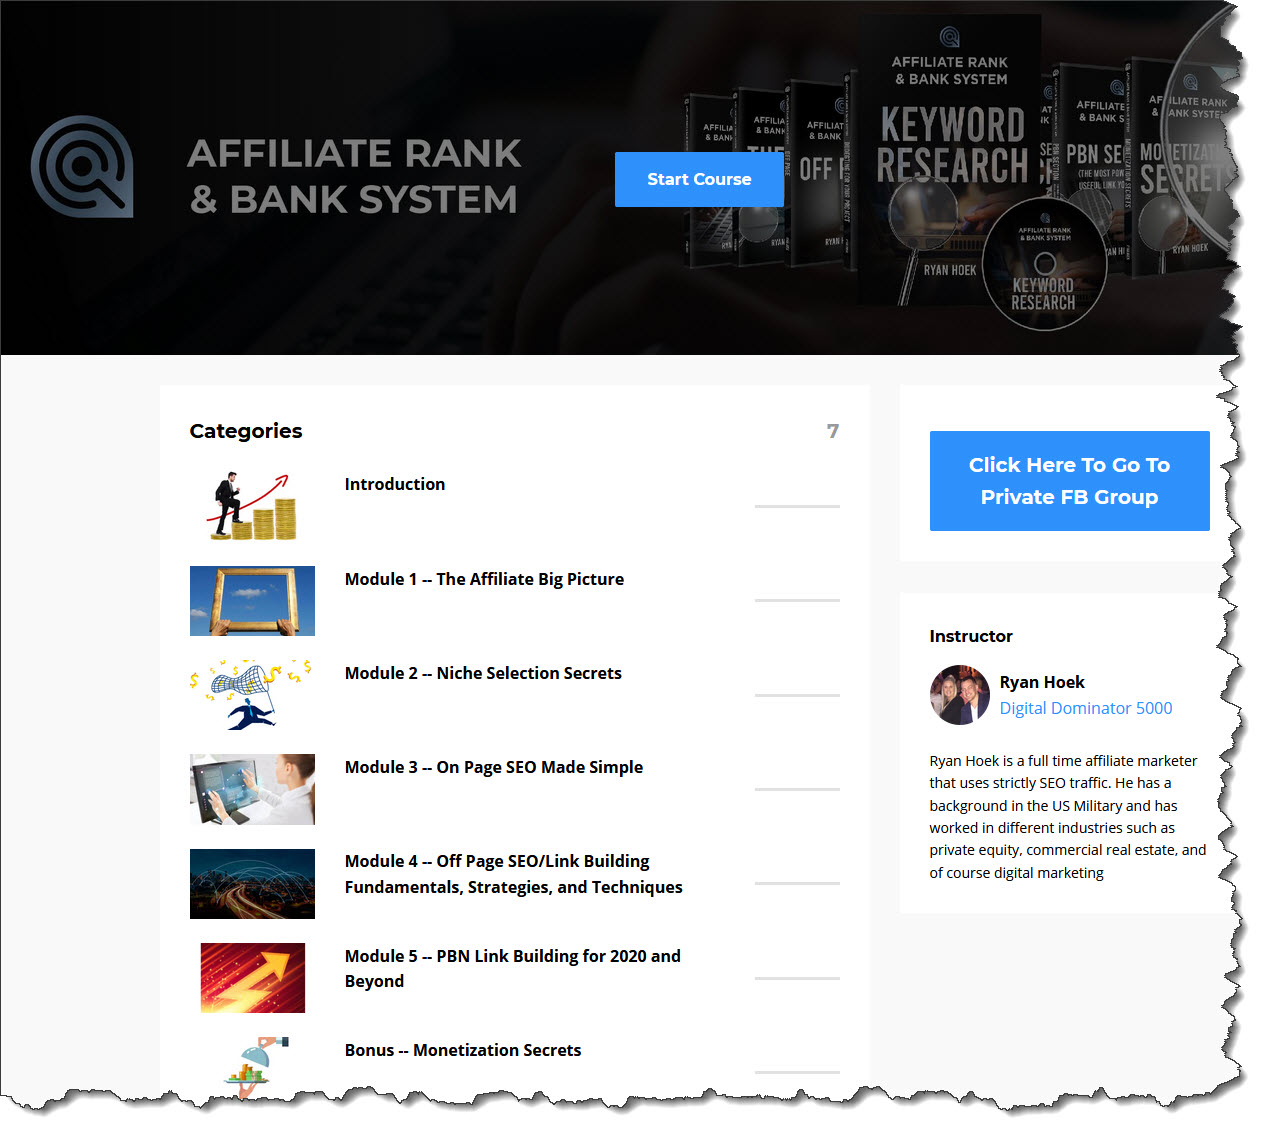 Affiliate Ranking & Banking System